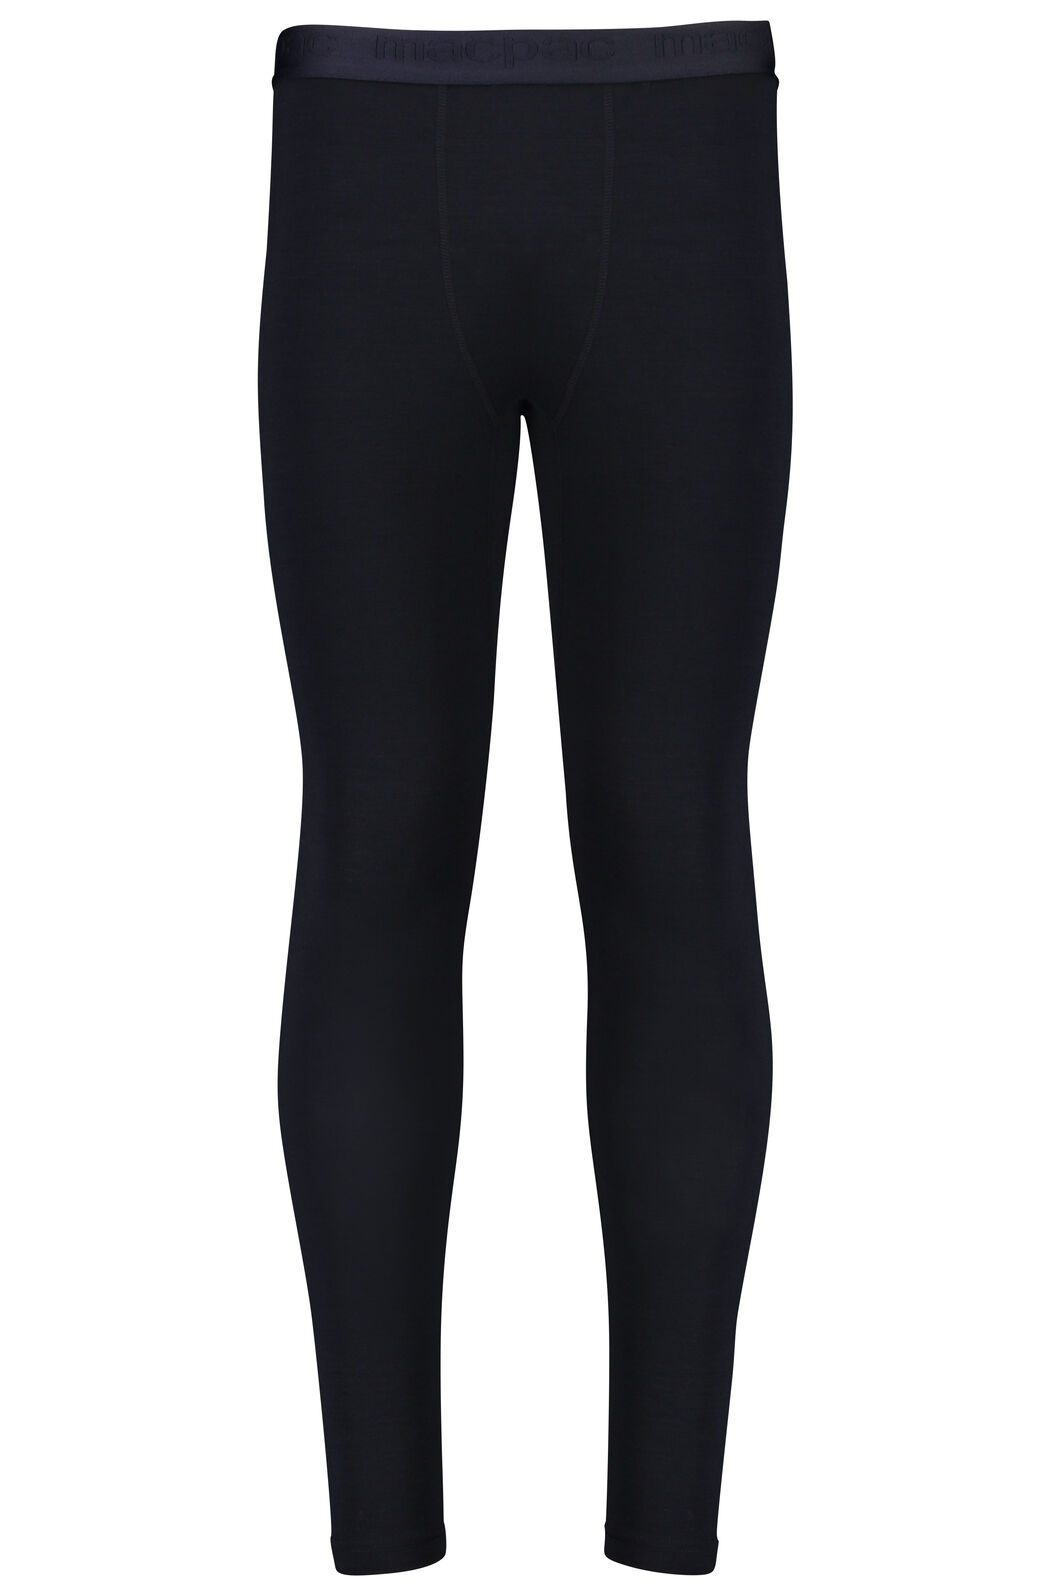 180 Merino Long Johns - Men's, Black, hi-res